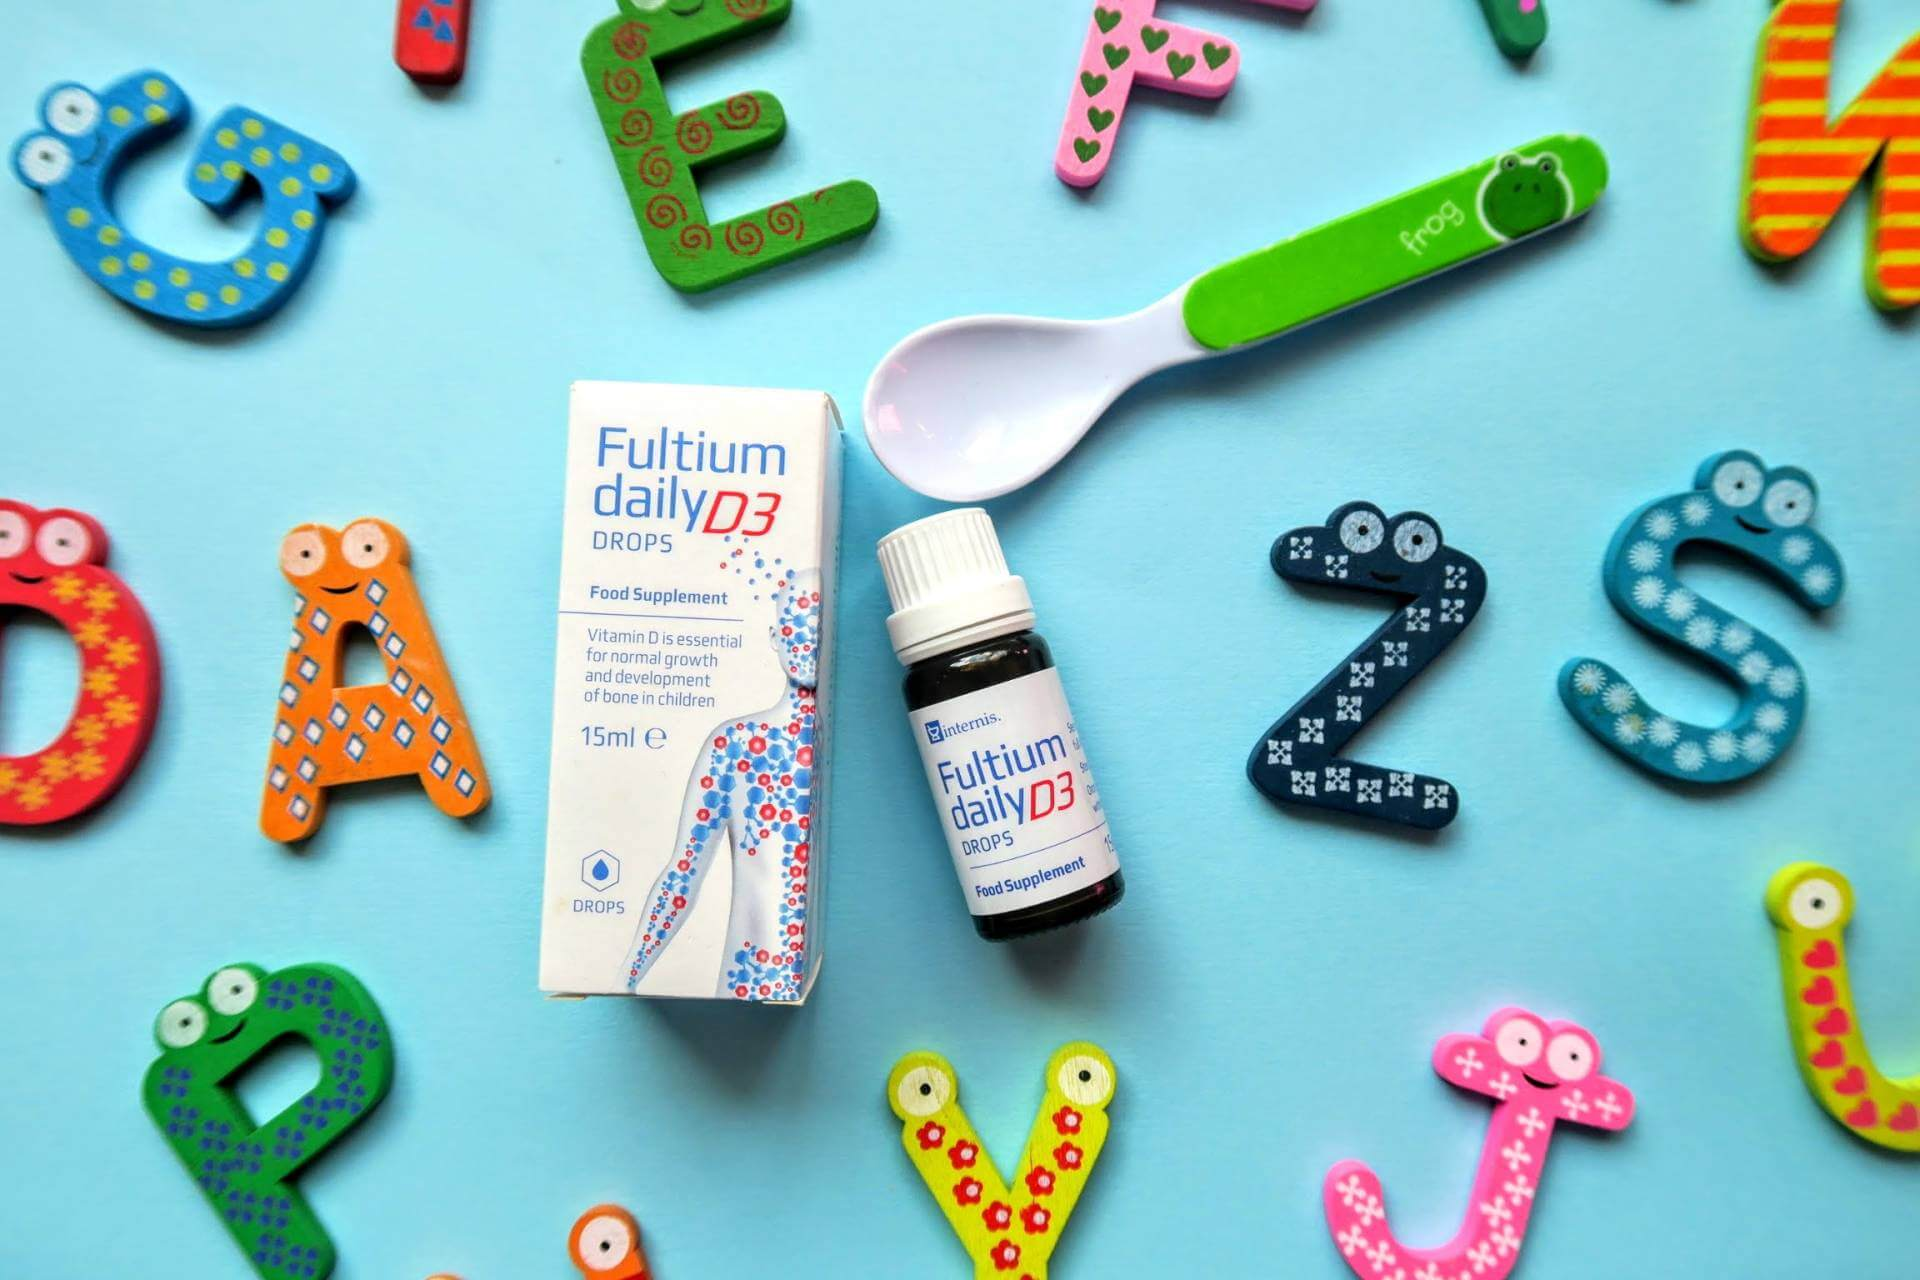 vitamin-d-truth-supplements-oil-children-uk-sunshine-fortified